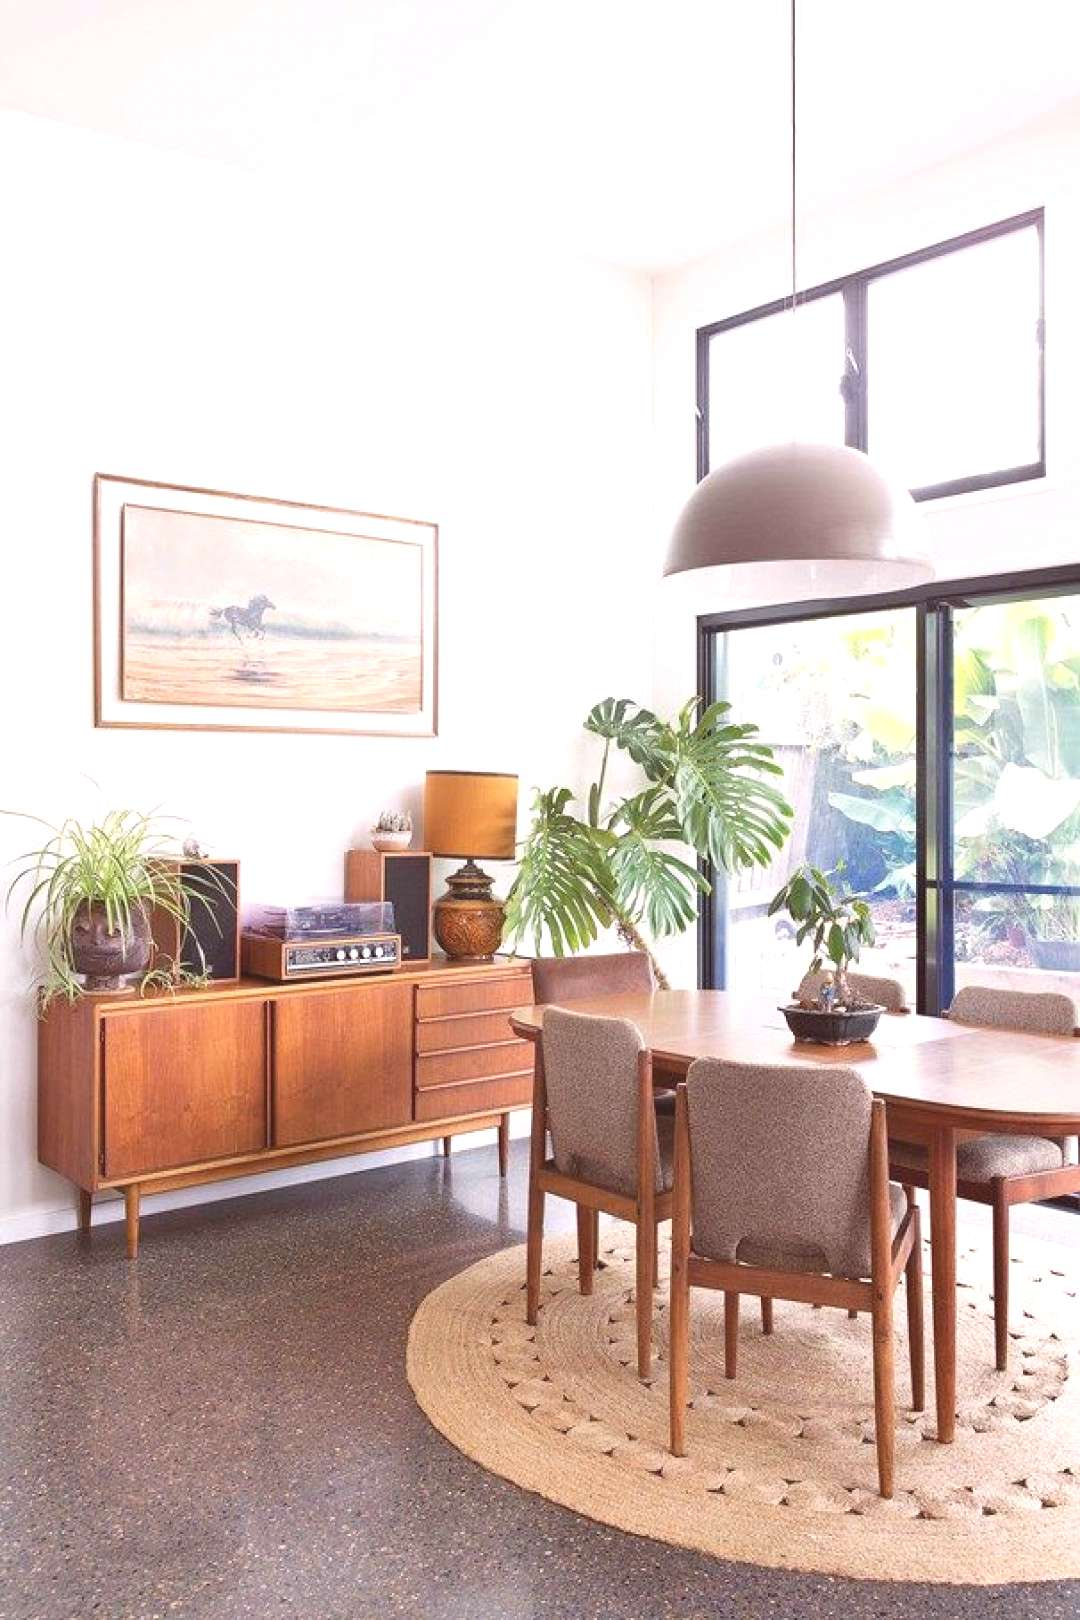 Home inspiration: Retro fabulous | Home Beautiful Magazine Australia